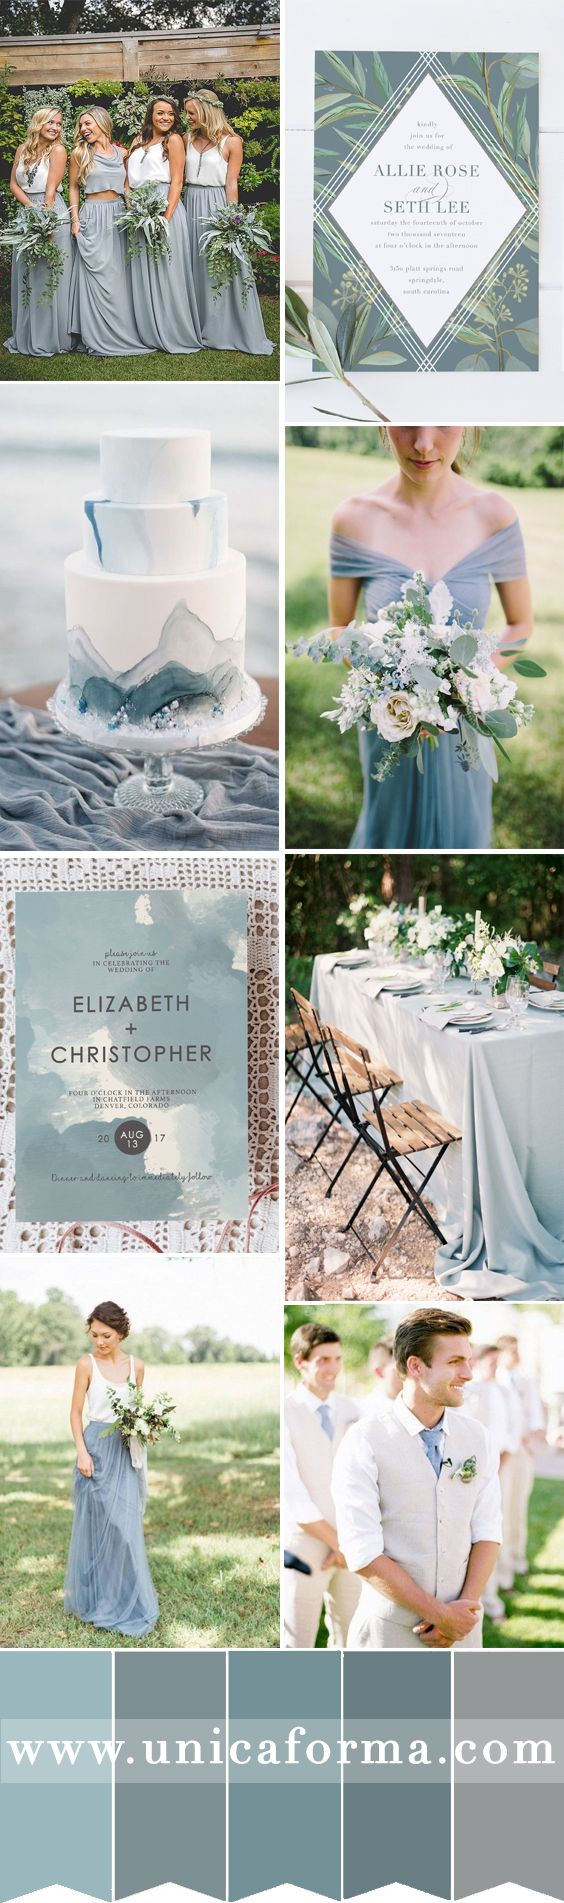 55d96fbbc1d Slate blue wedding with grey accents. Dusty blue wedding. Boho wedding.  Bohemian bridesmaids